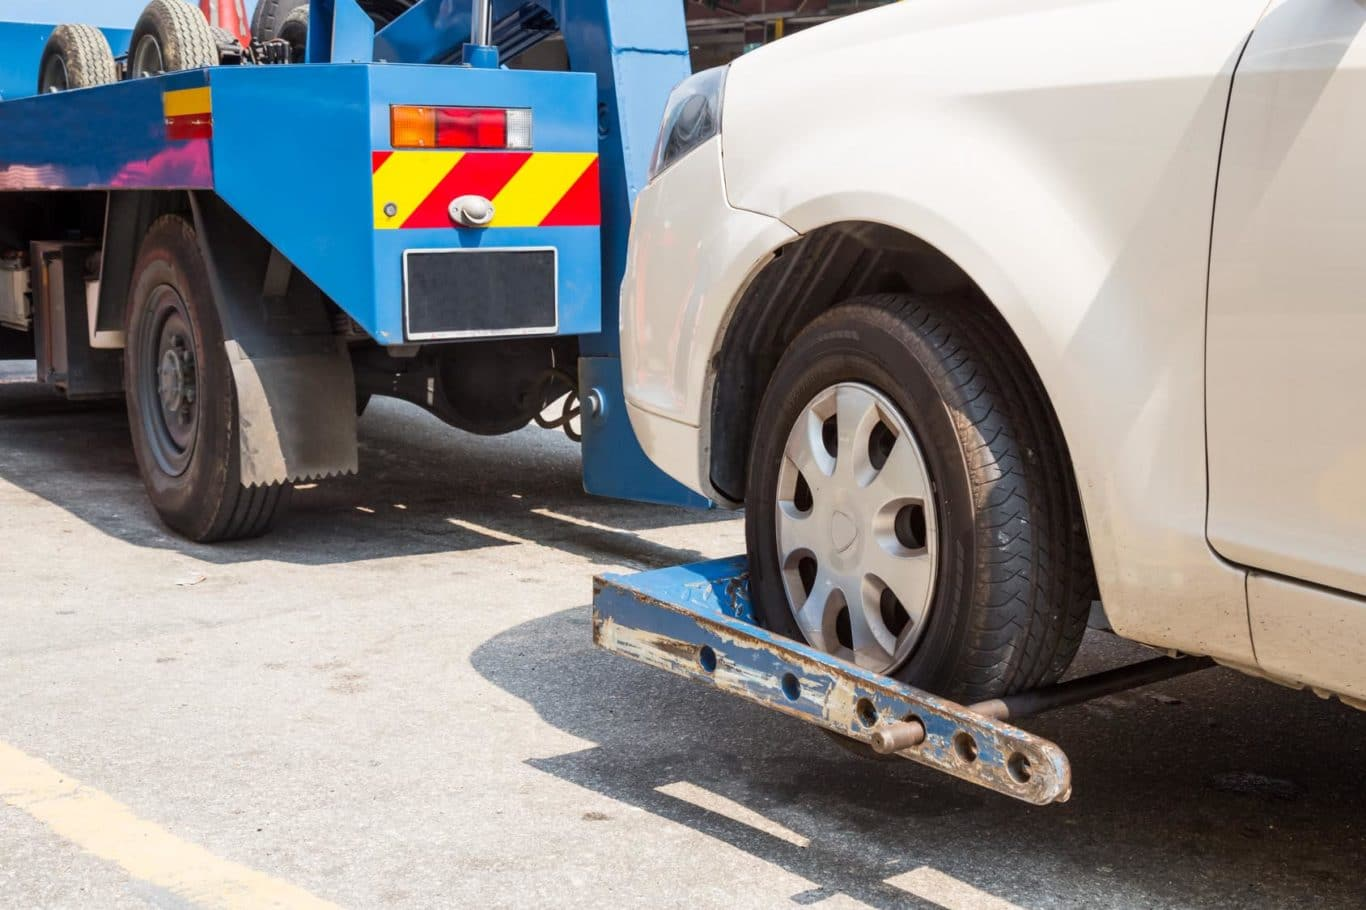 Blessington expert Car Towing services